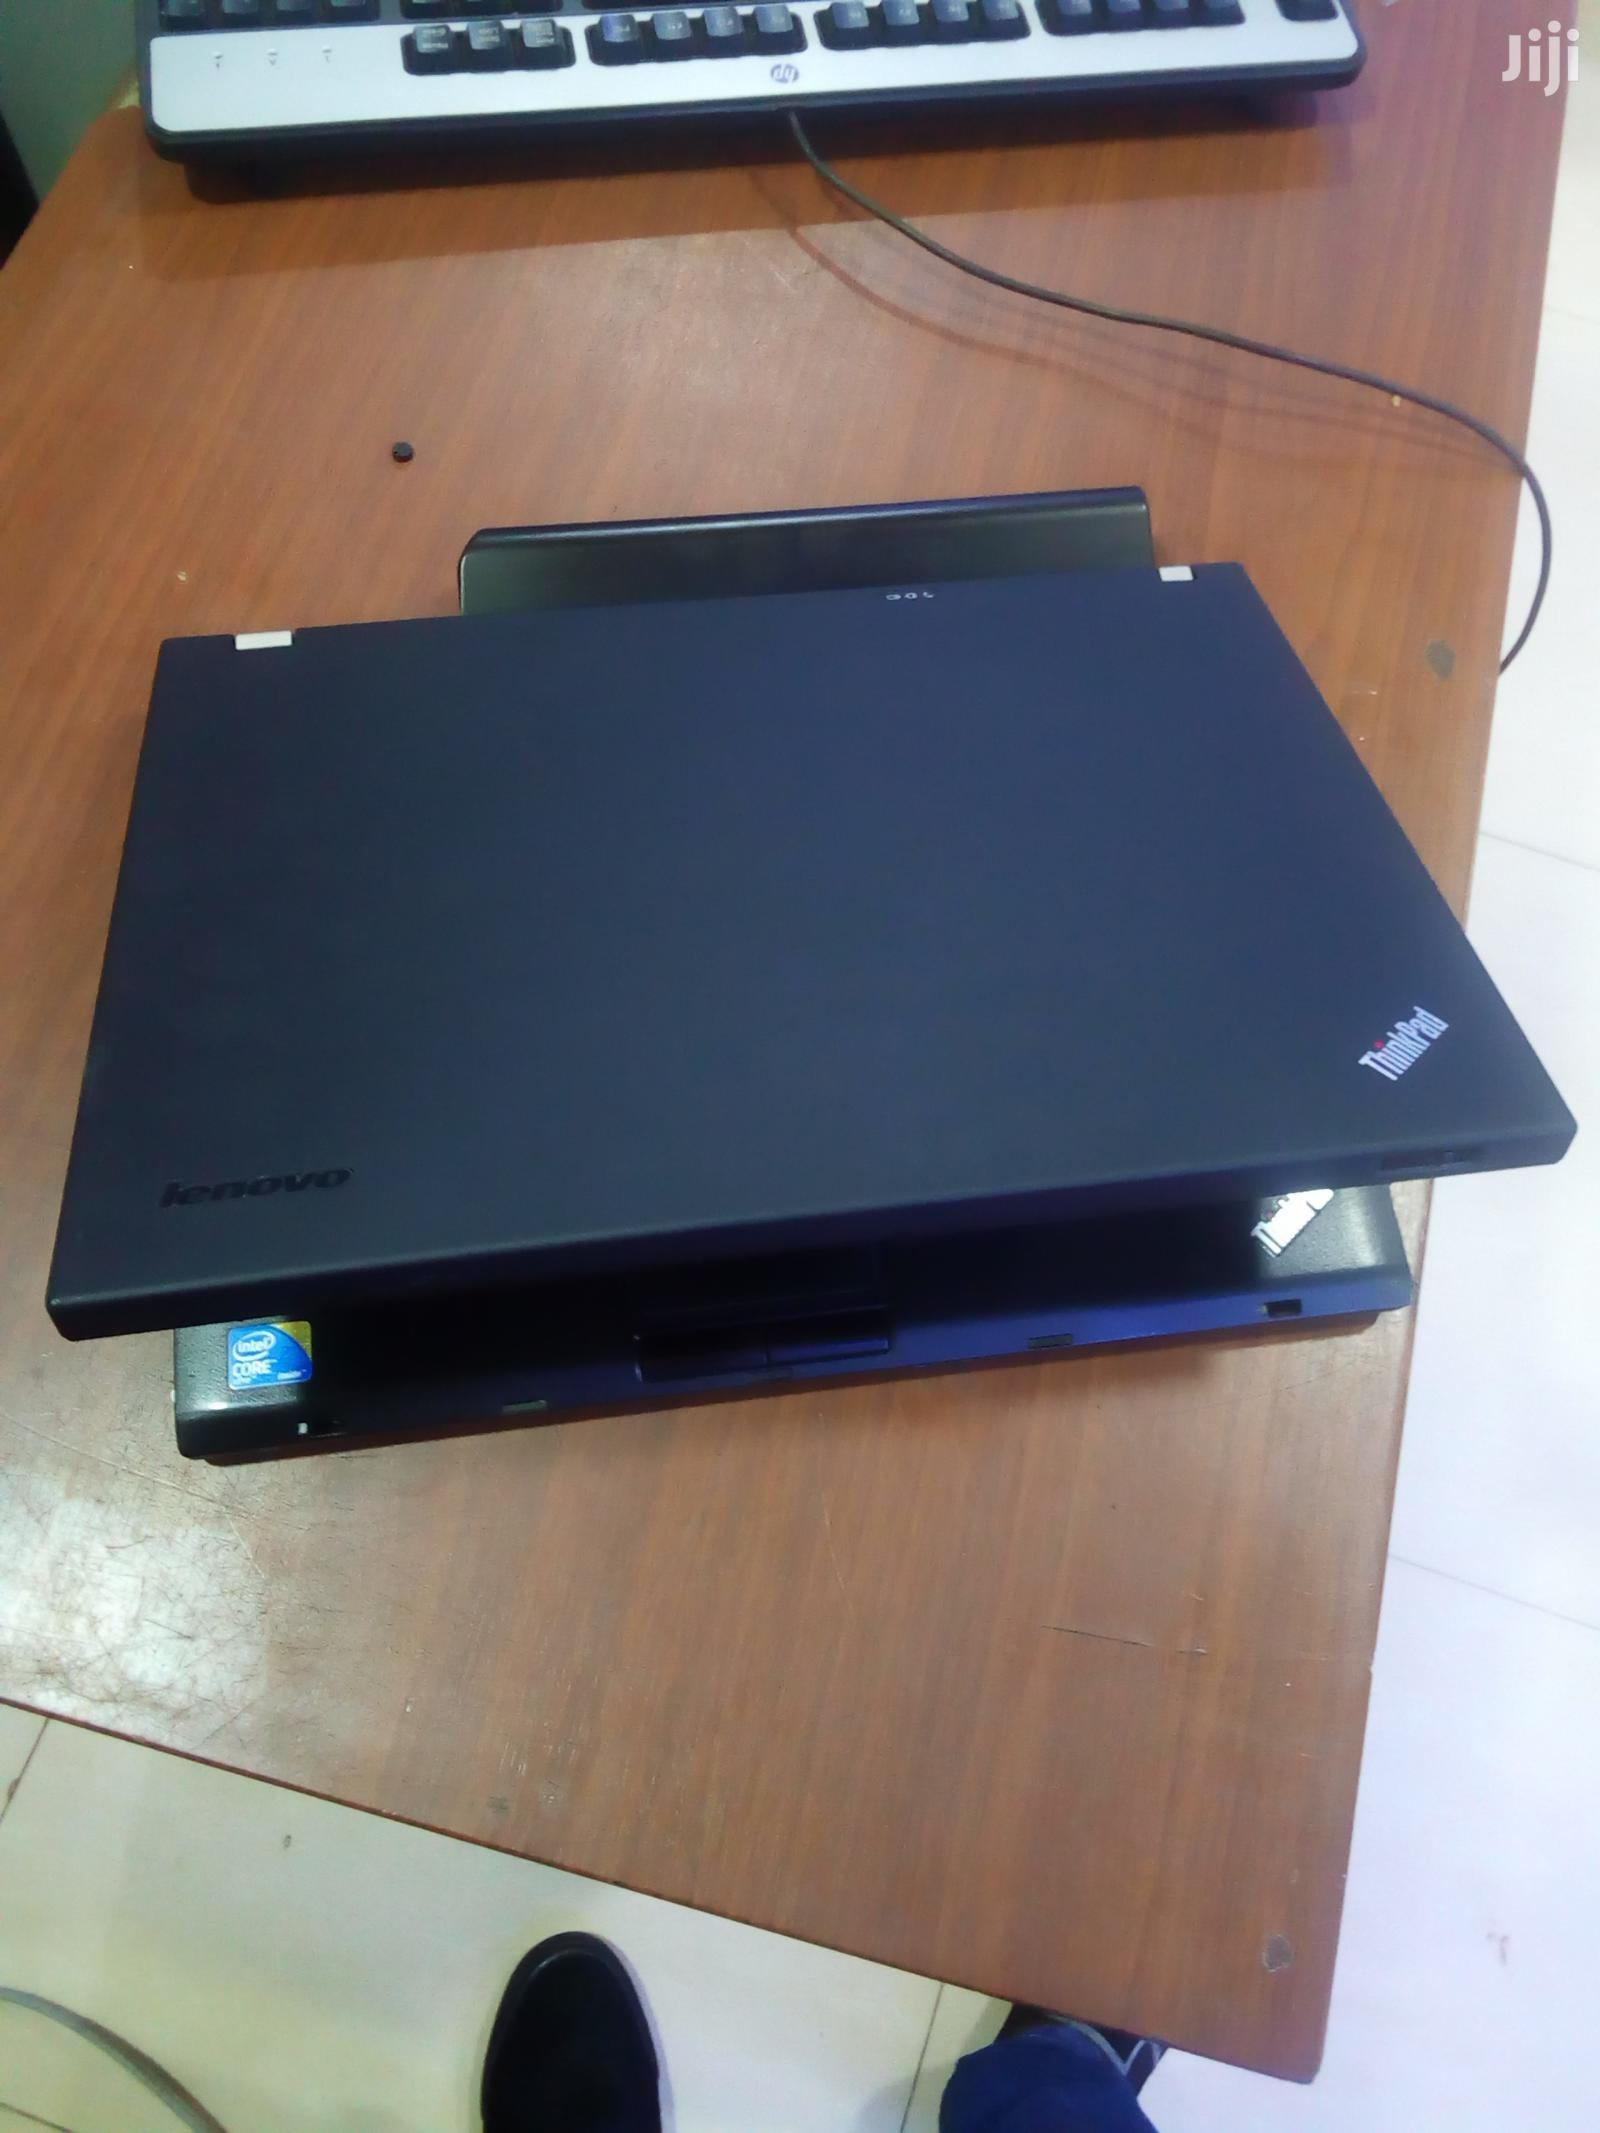 Laptop Lenovo ThinkPad T400 2GB Intel Core 2 Duo HDD 250GB | Laptops & Computers for sale in Kampala, Central Region, Uganda